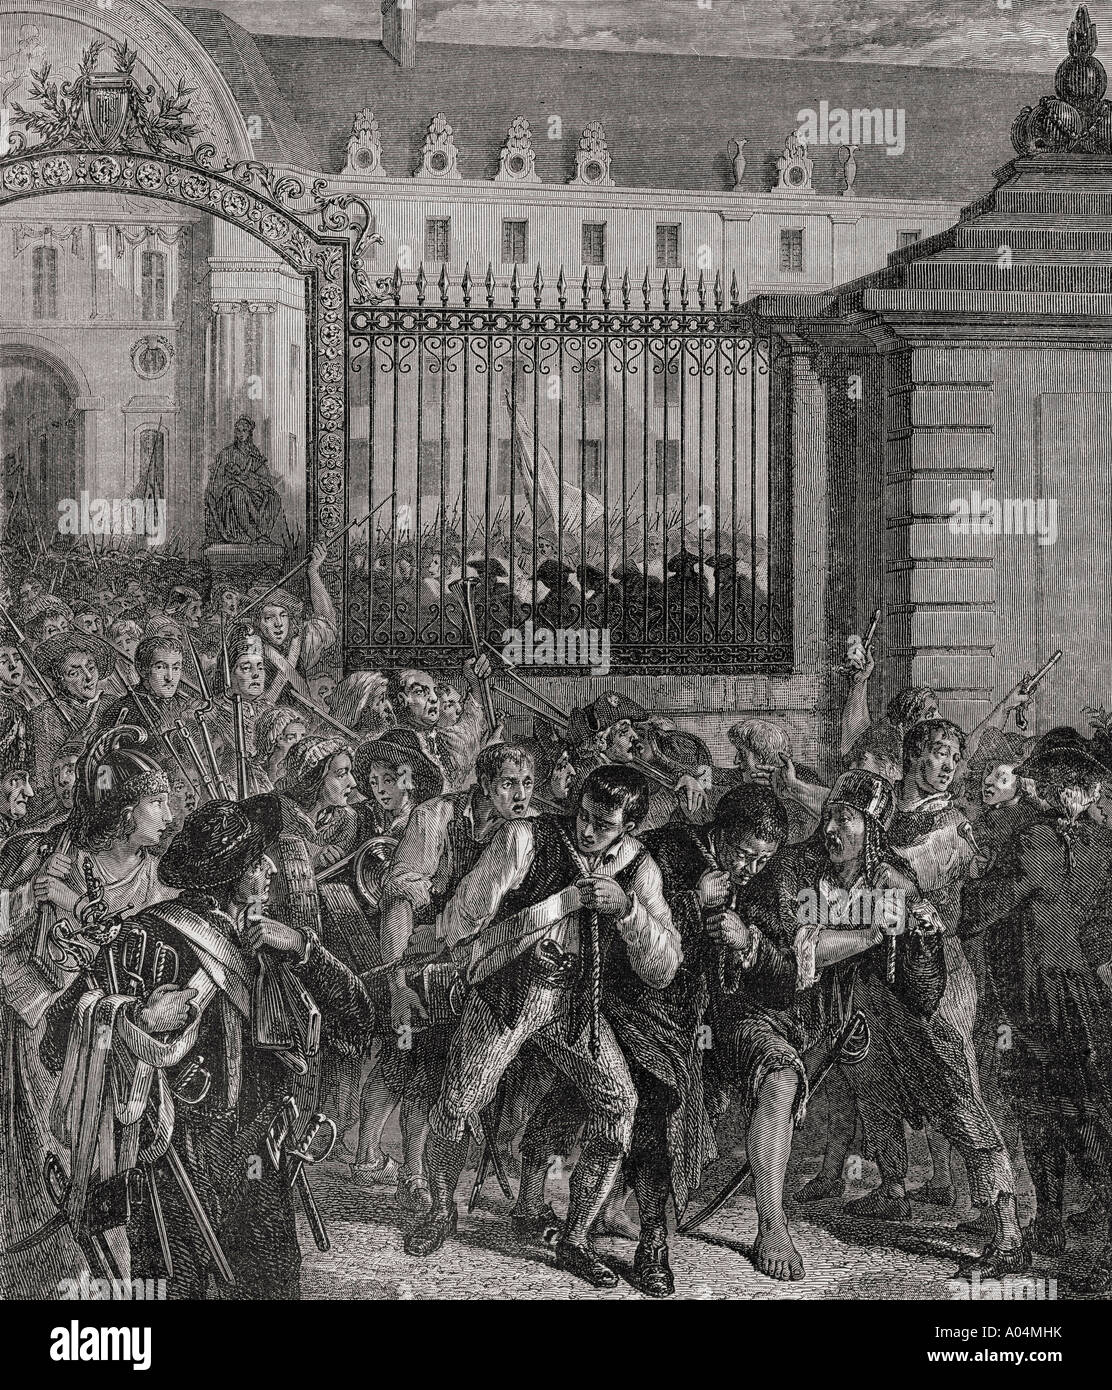 French Revolution Pillage of the Invalides Armoury 14 July 1789 - Stock Image